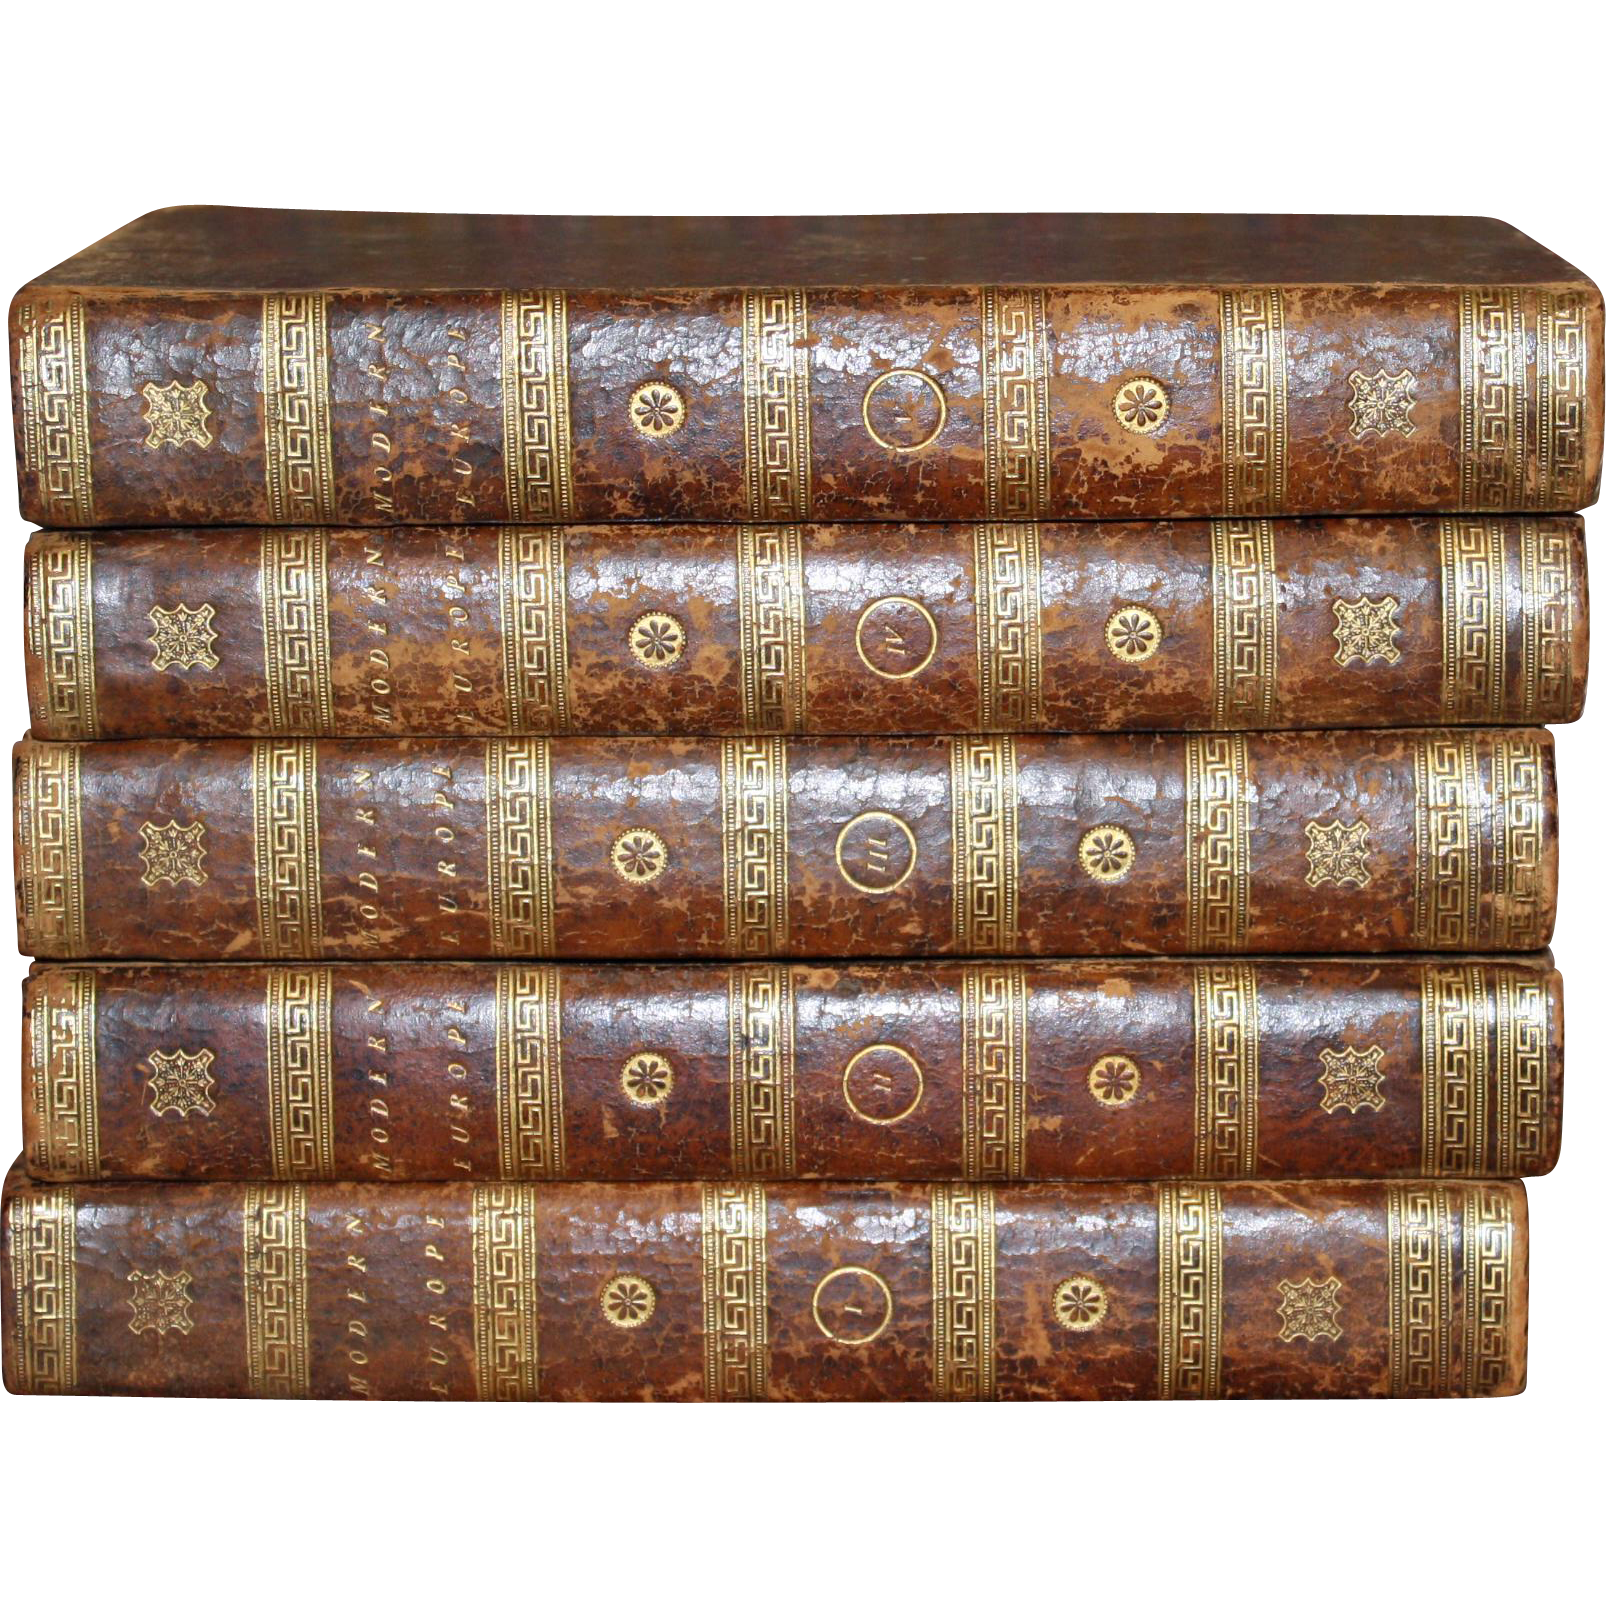 History of Modern Europe in 5 Volumes, 1805, Leather Bound